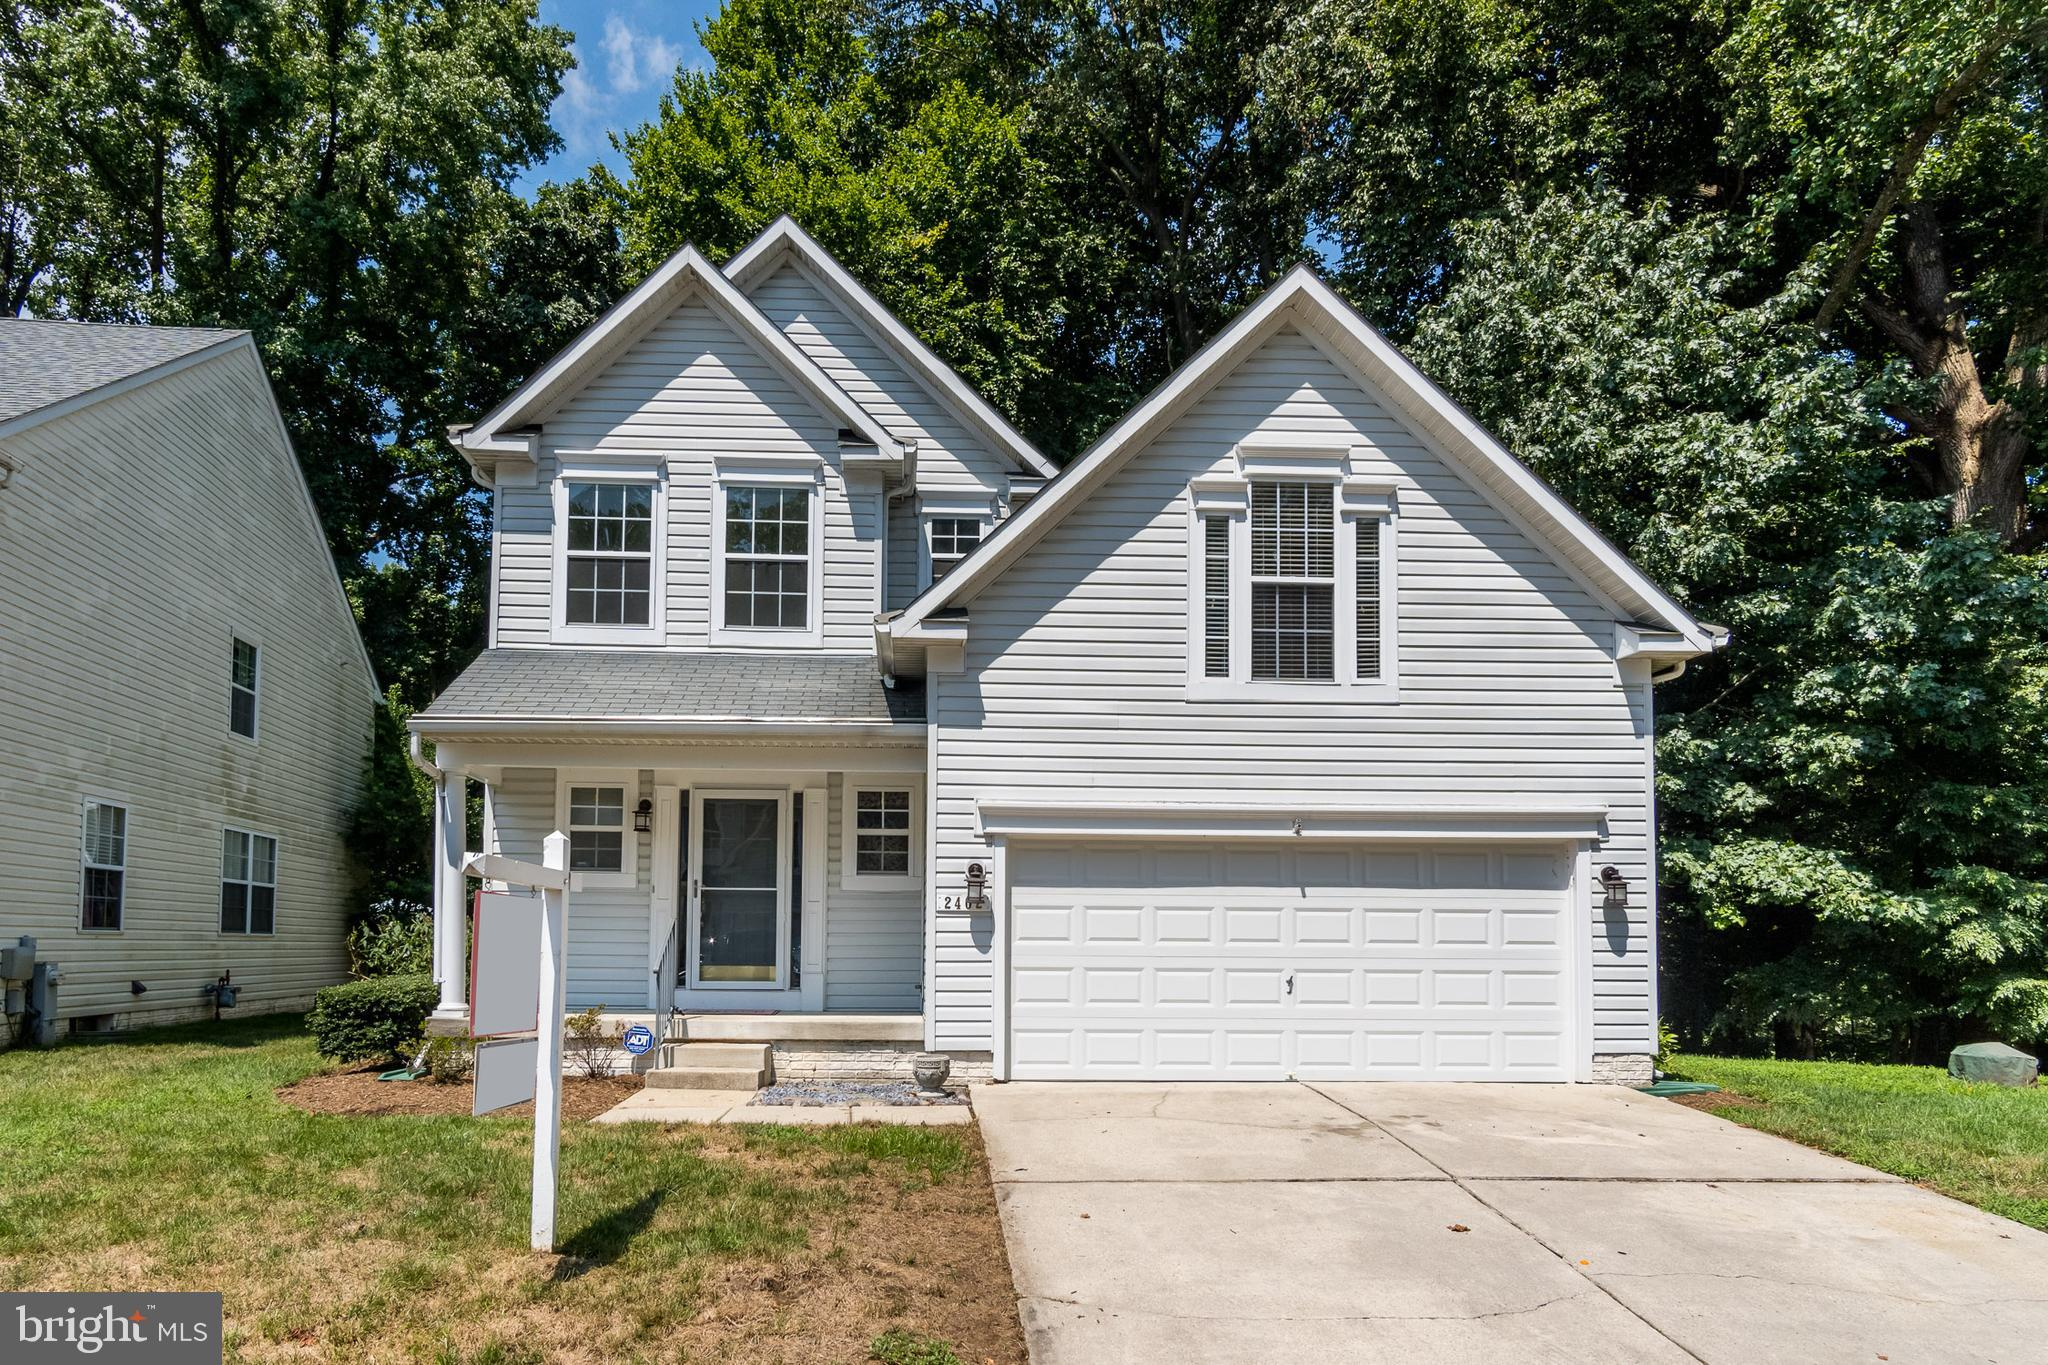 A rare gem in Walden. This spacious single-family, two-car garage sits at the end of the cul-de-sac